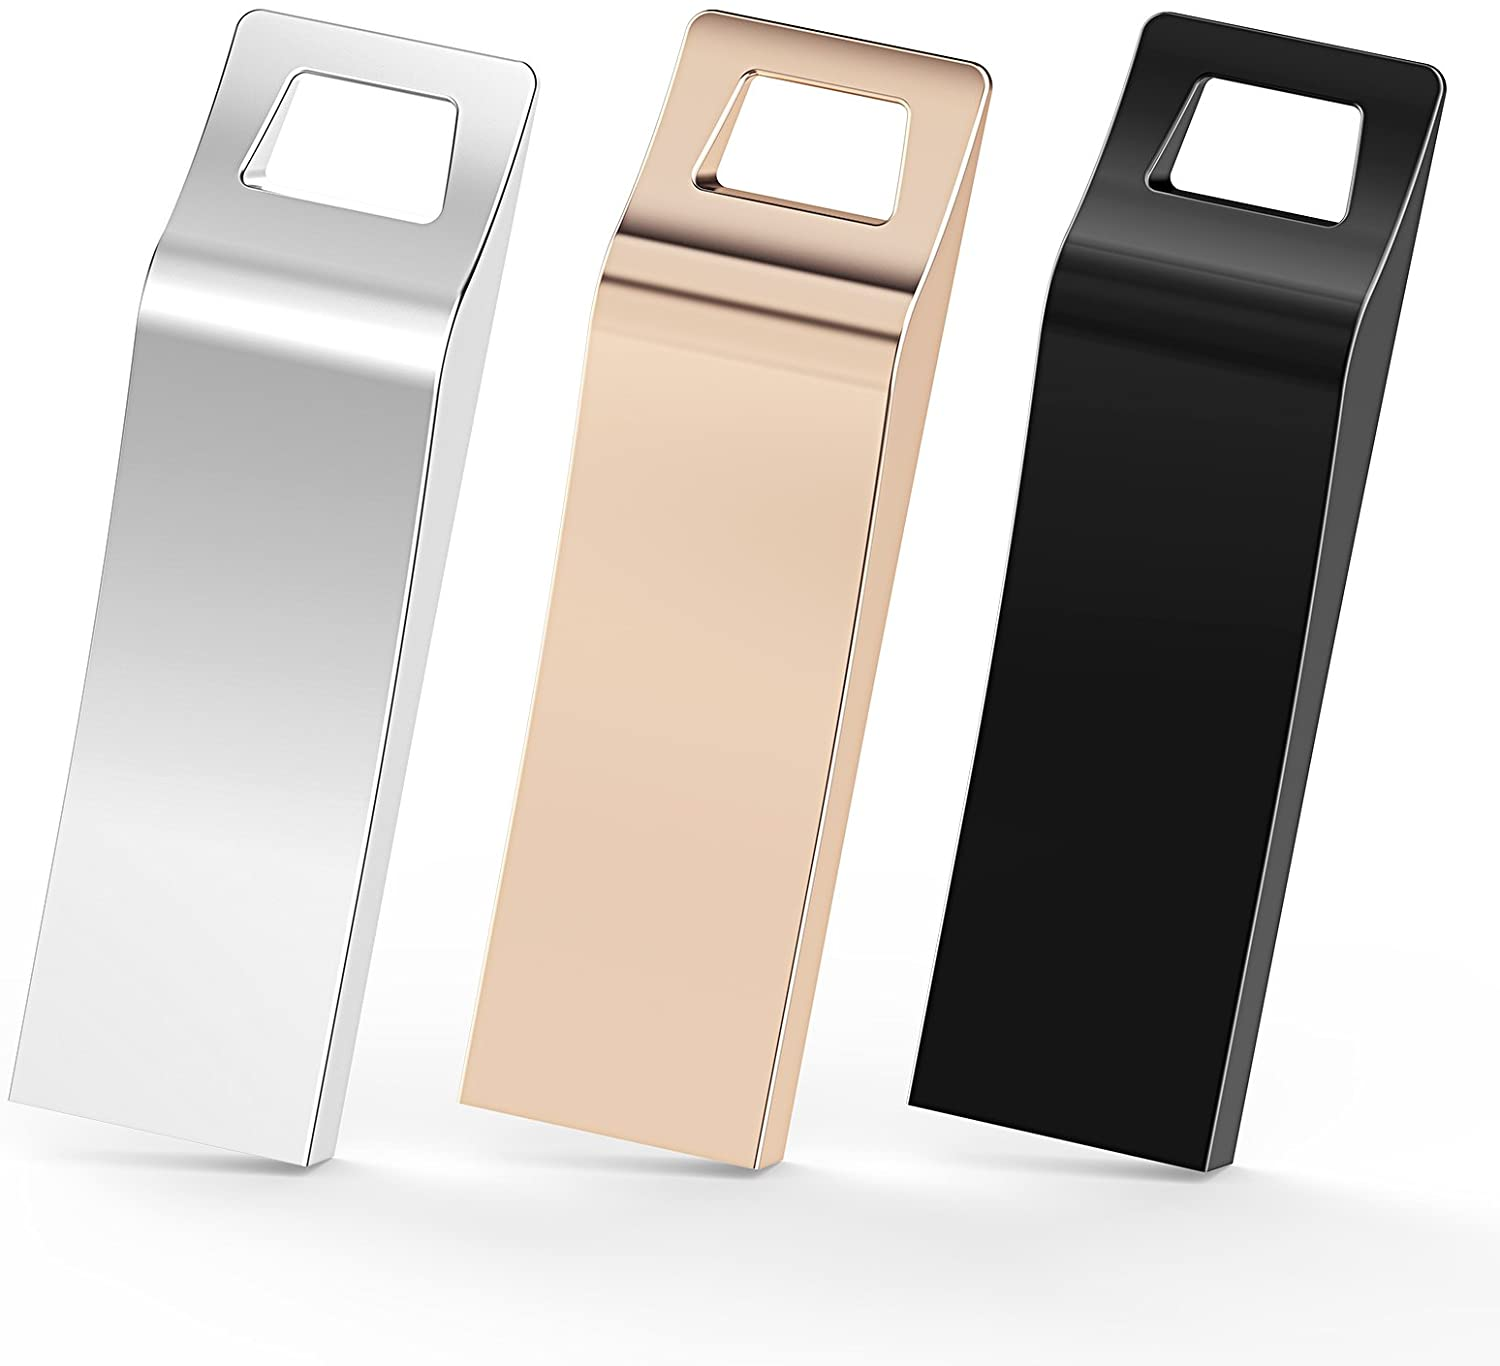 TOPESEL 3 Pack USB 2.0 Flash Drives Metal Memory Stick Waterproof Thumb Drive (3 Mixed Colors: Black, Gold, Silver)